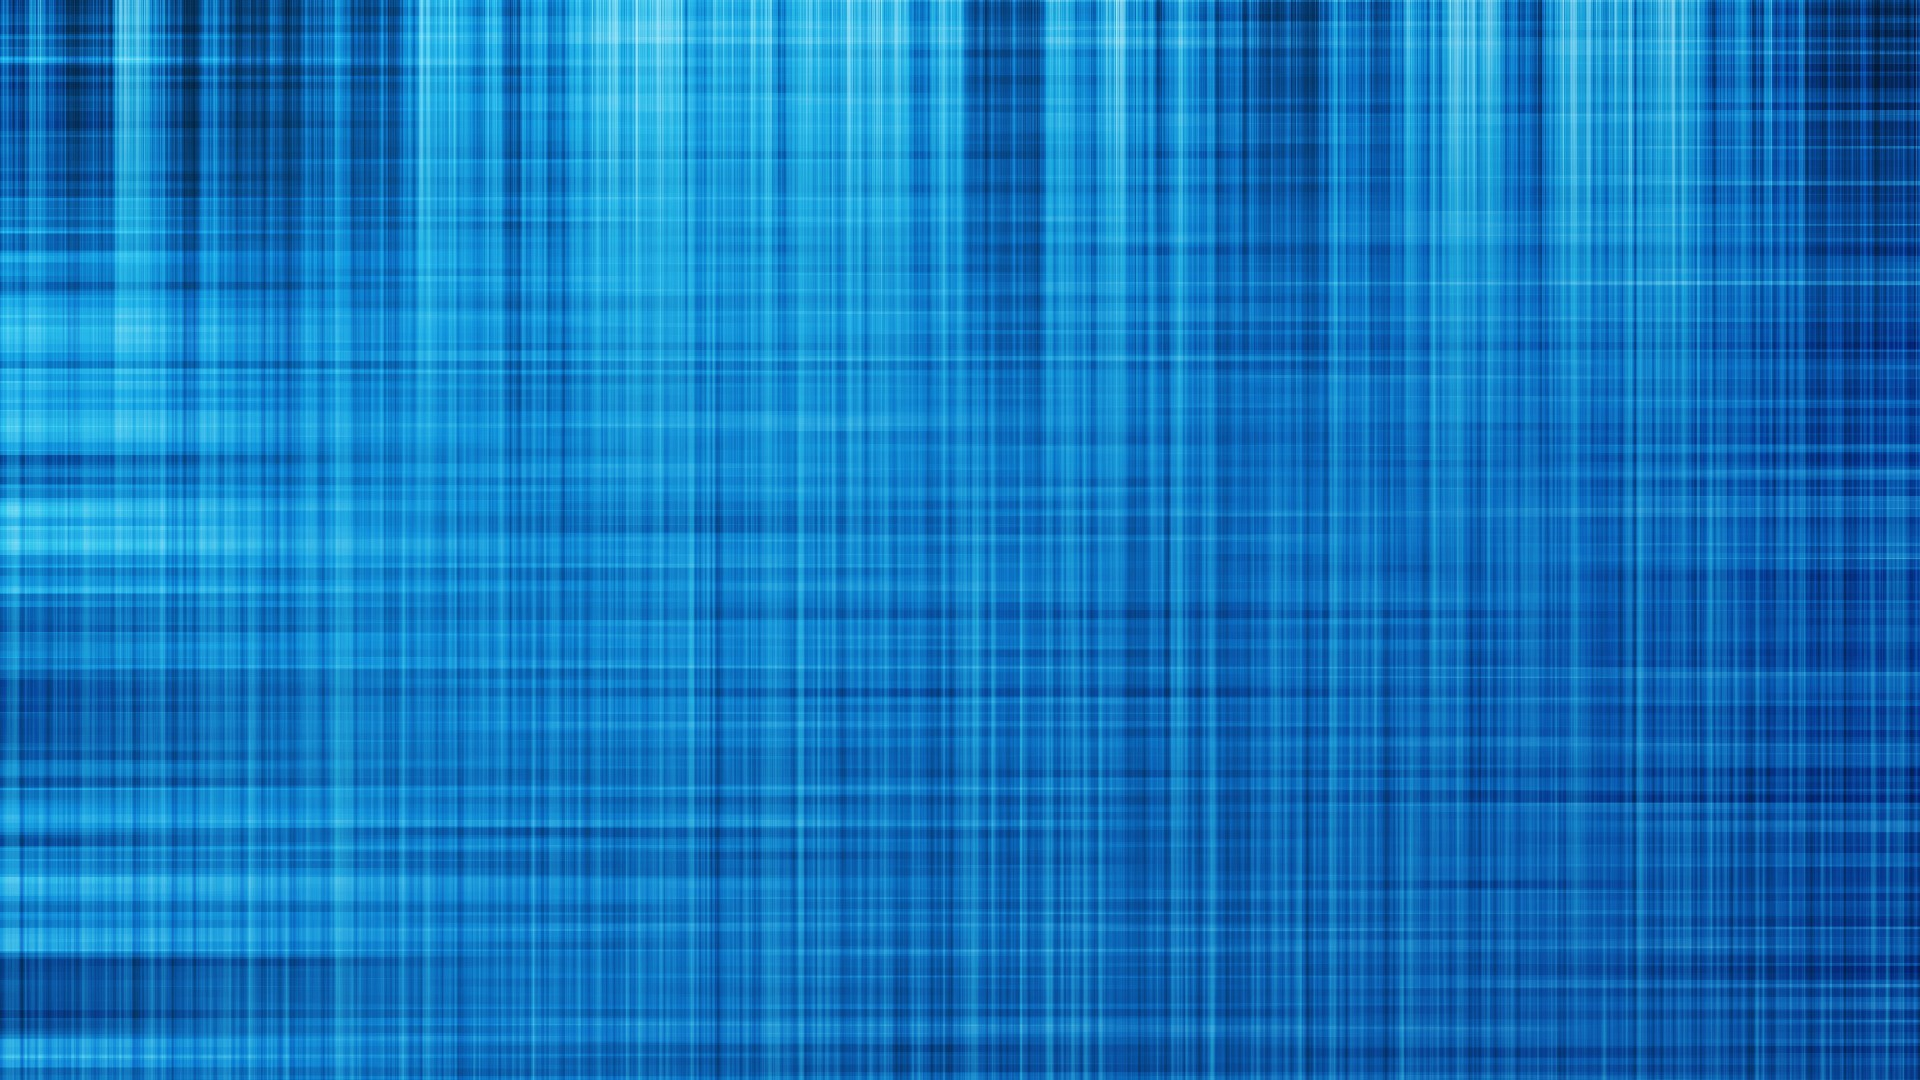 Blue Hd Wallpapers Collection (33+)